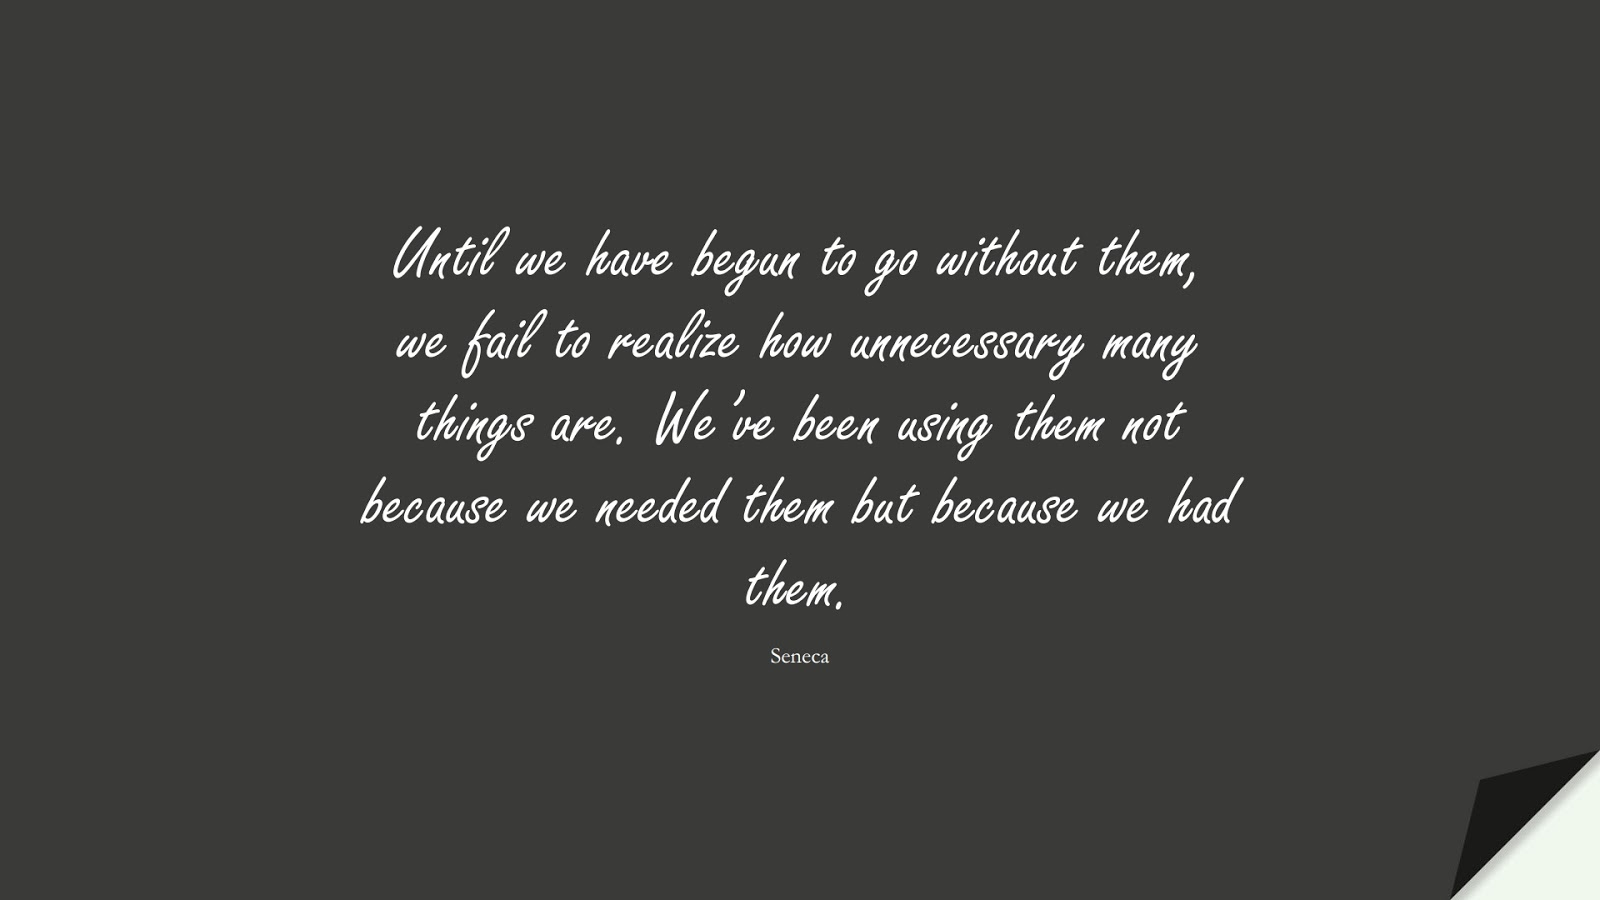 Until we have begun to go without them, we fail to realize how unnecessary many things are. We've been using them not because we needed them but because we had them. (Seneca);  #StoicQuotes